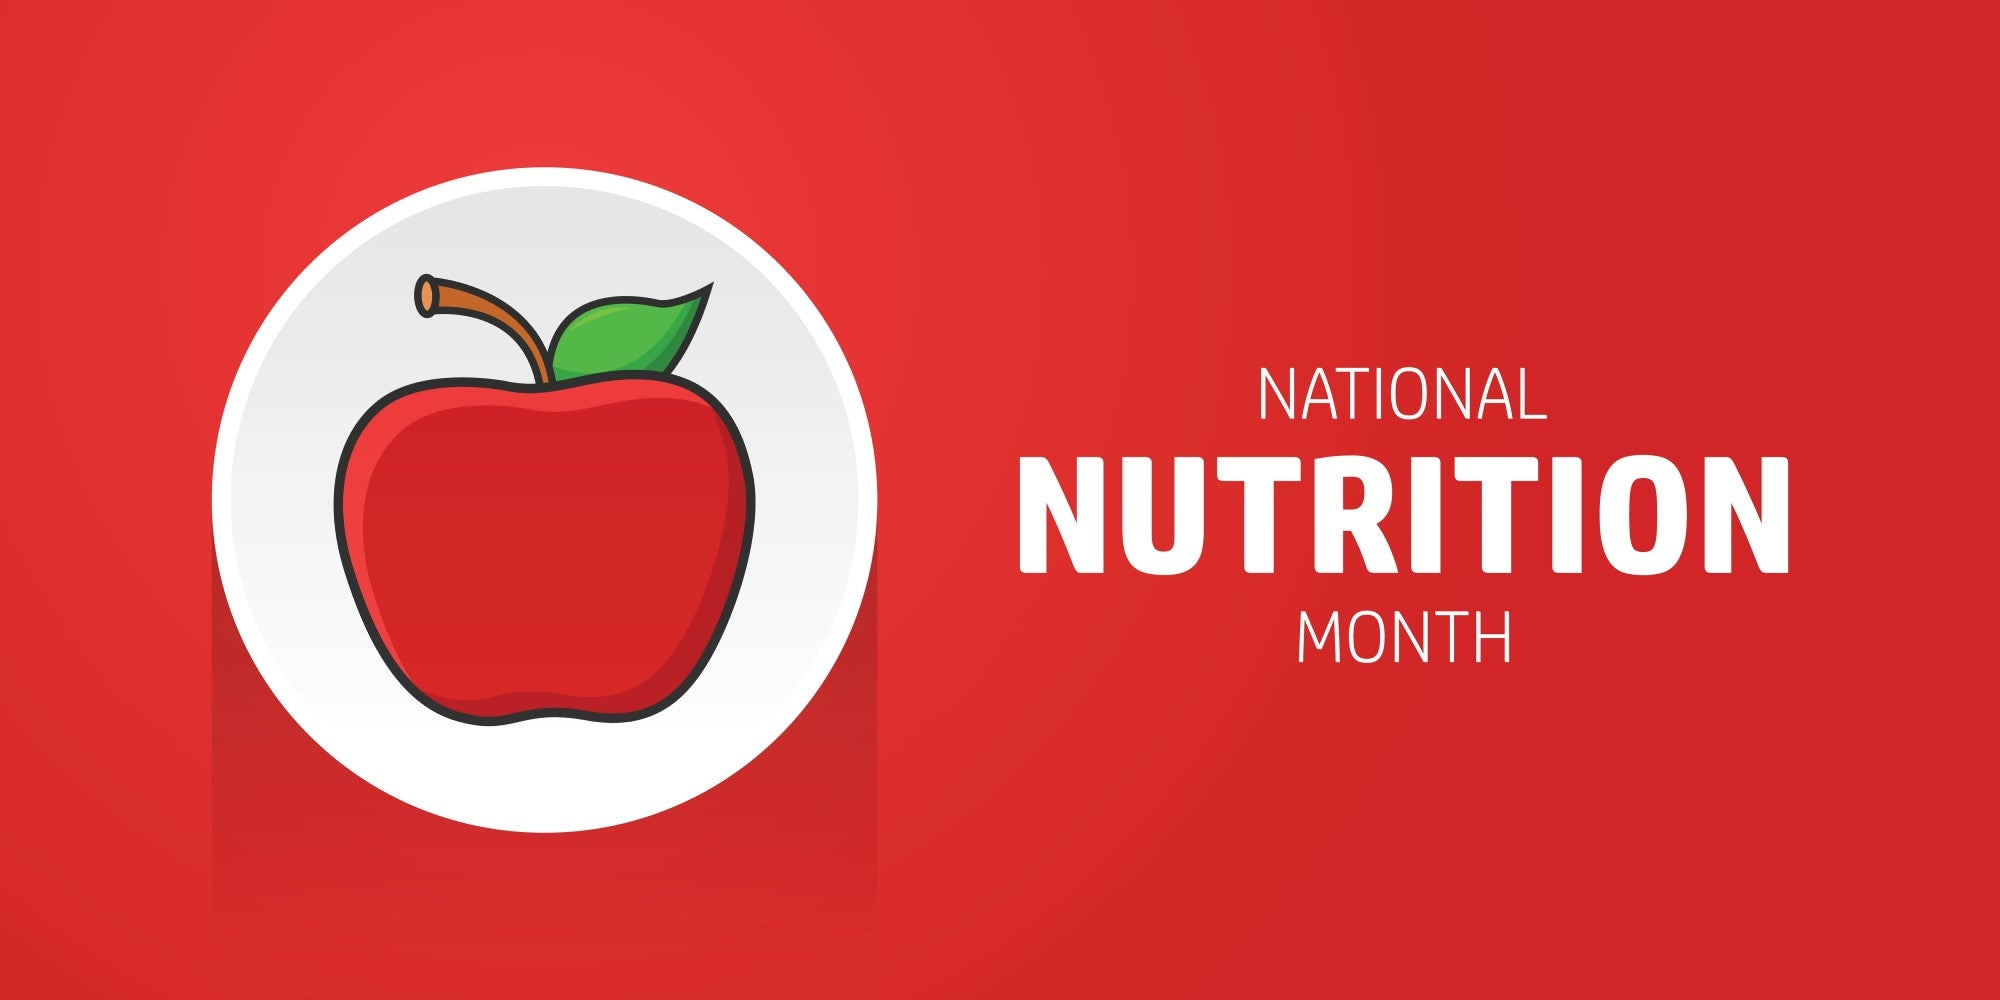 Manage Your Cholesterol for National Nutrition Month